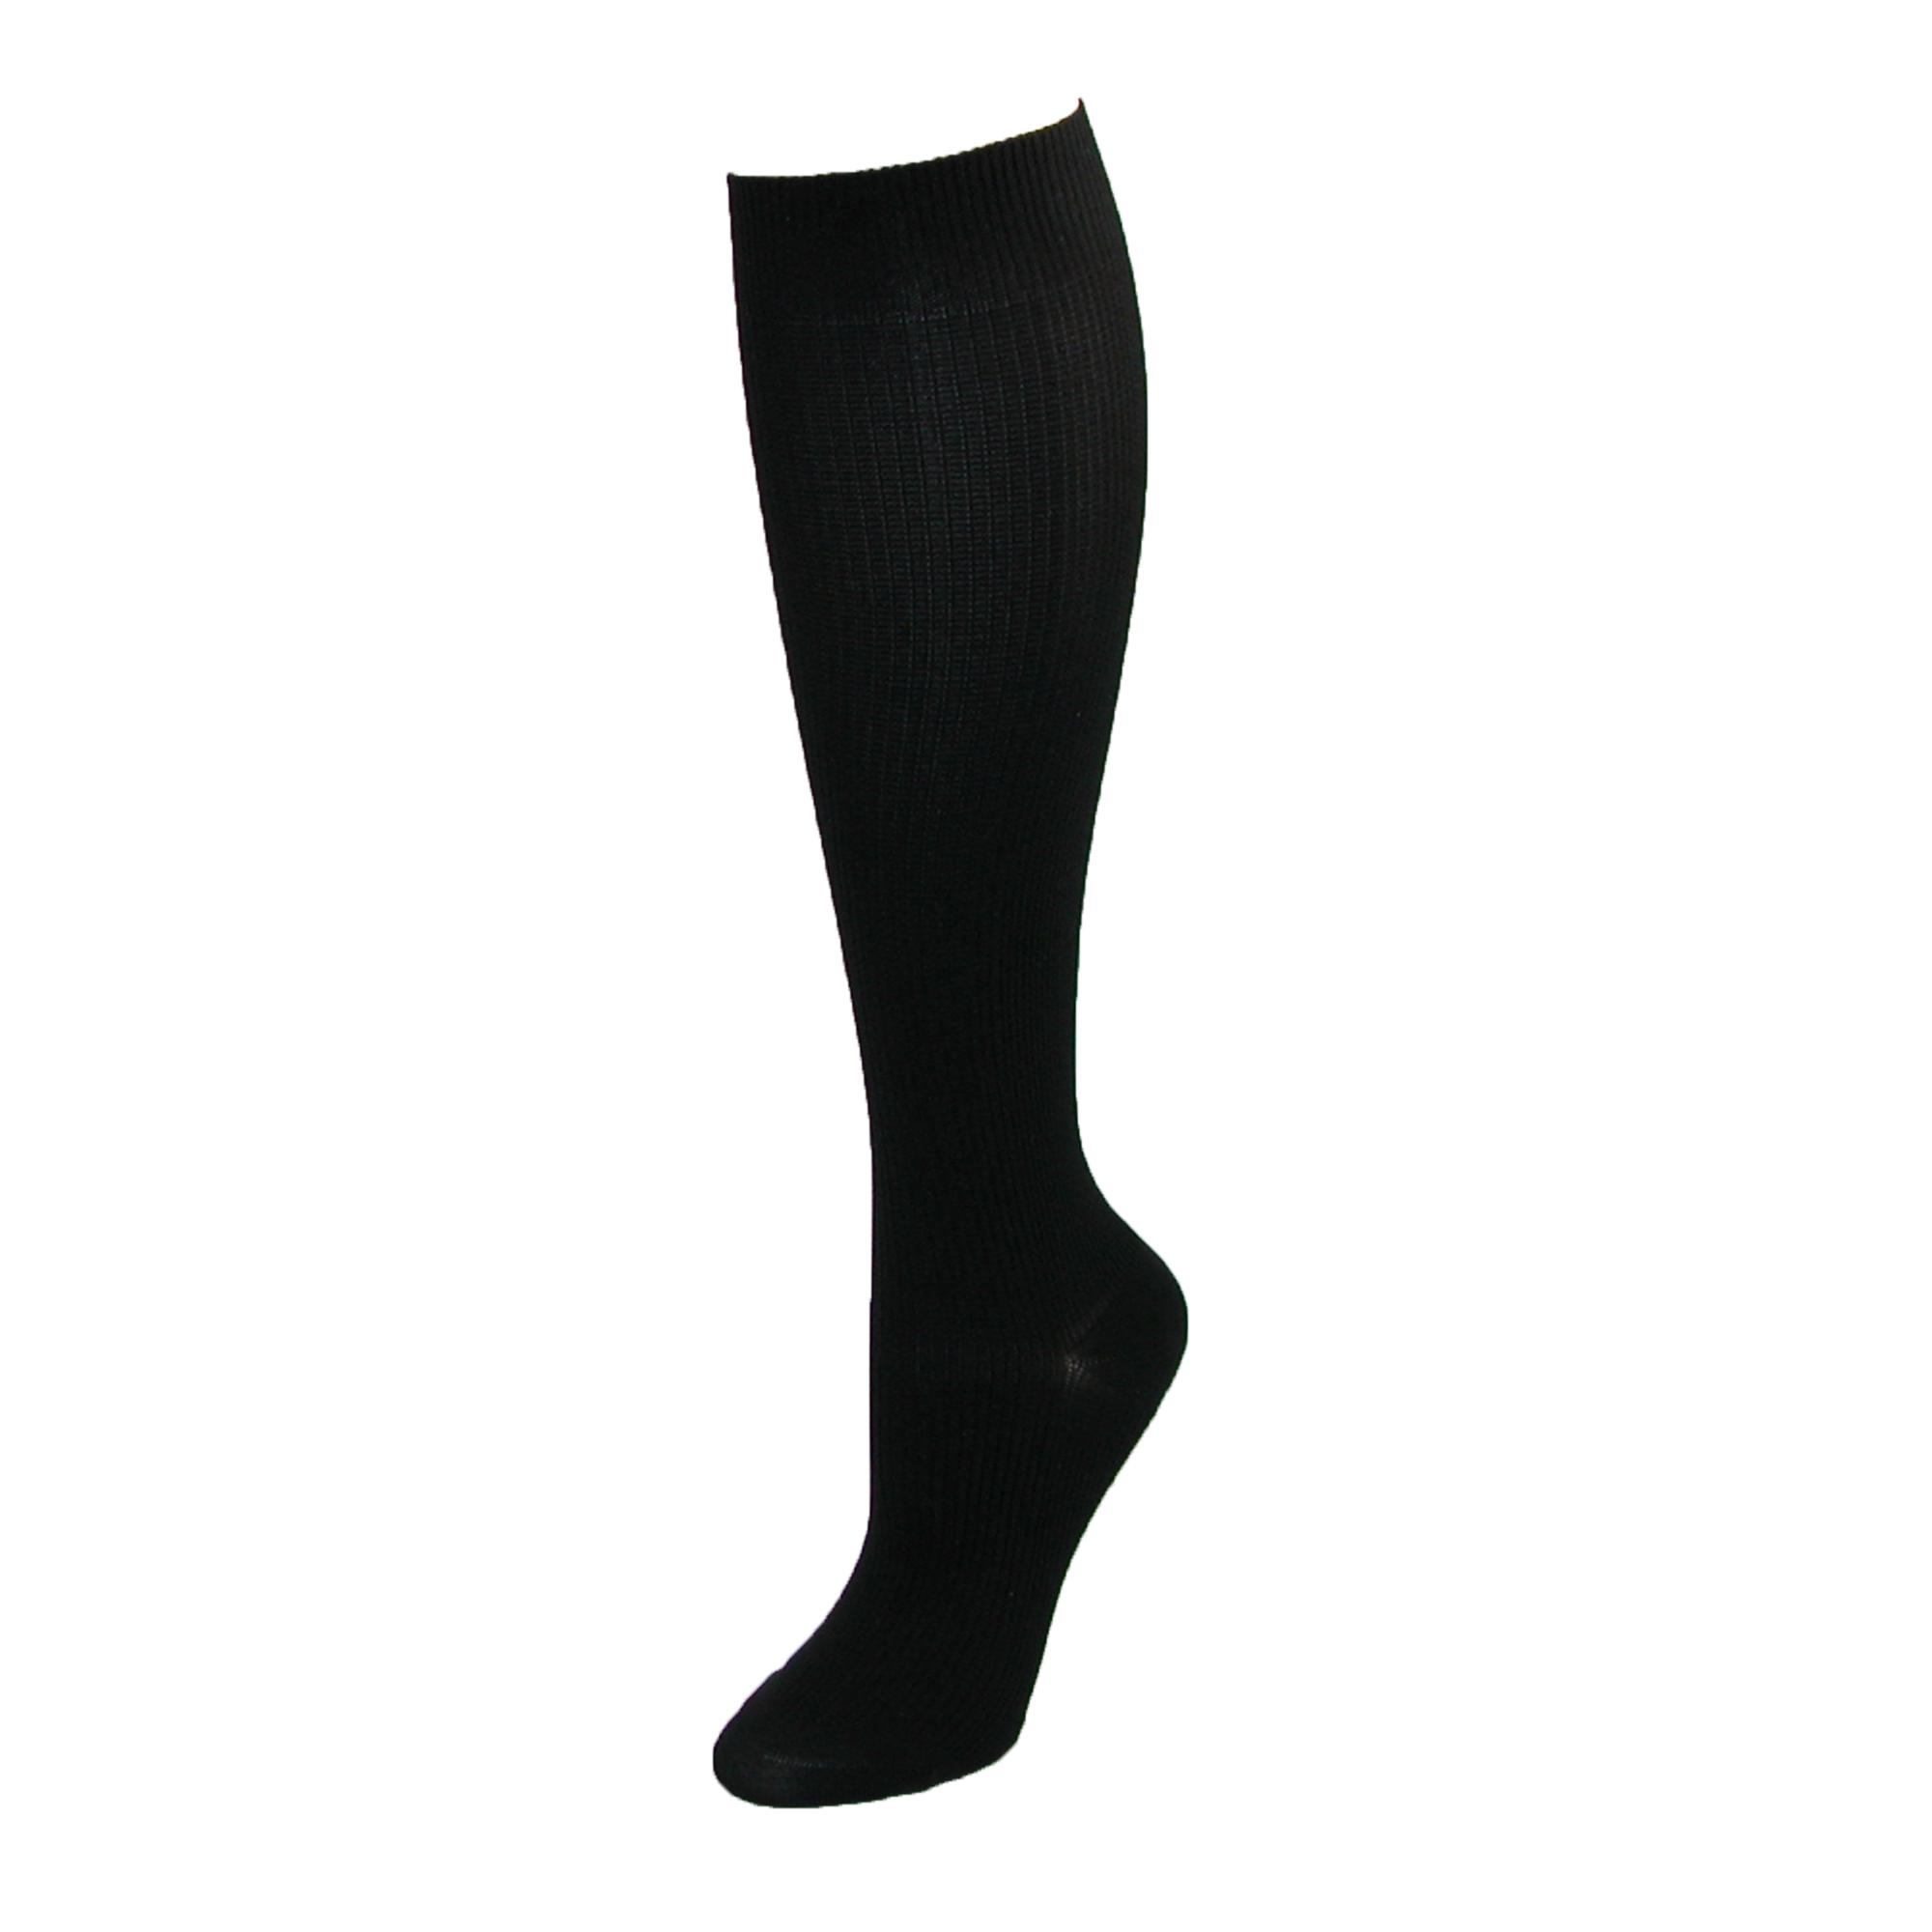 Think Medical Womens Knee High Gradient Compression Socks